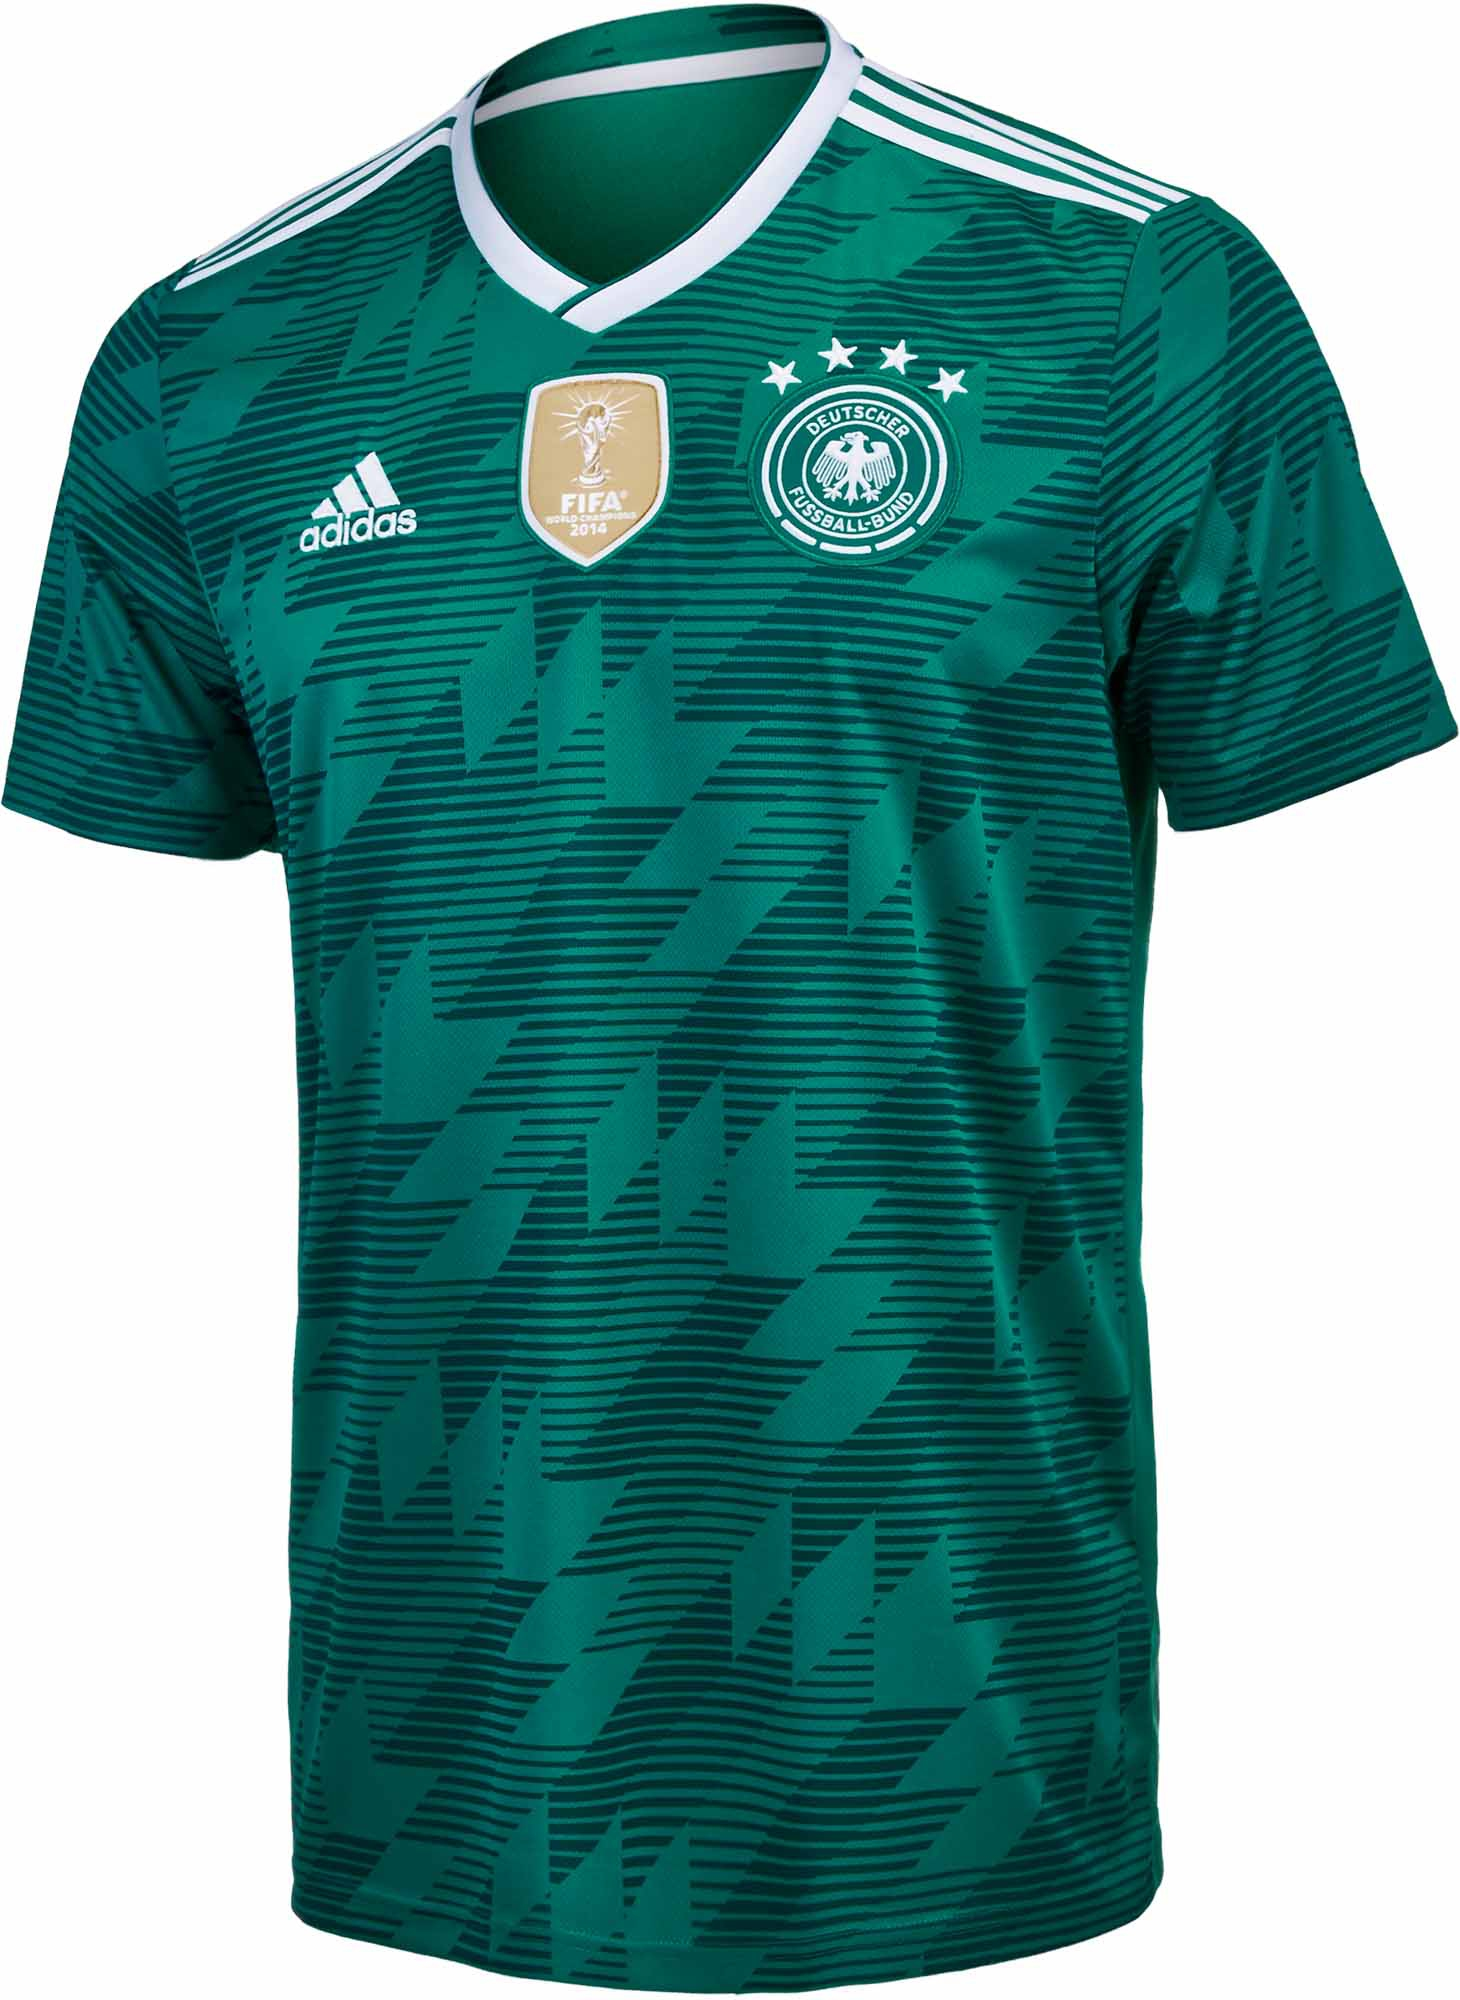 80c17f0a287 Jersey - Germany Away Kit World Cup Official 2018 Jersey Football Jersey  Onlin. ‹ ›